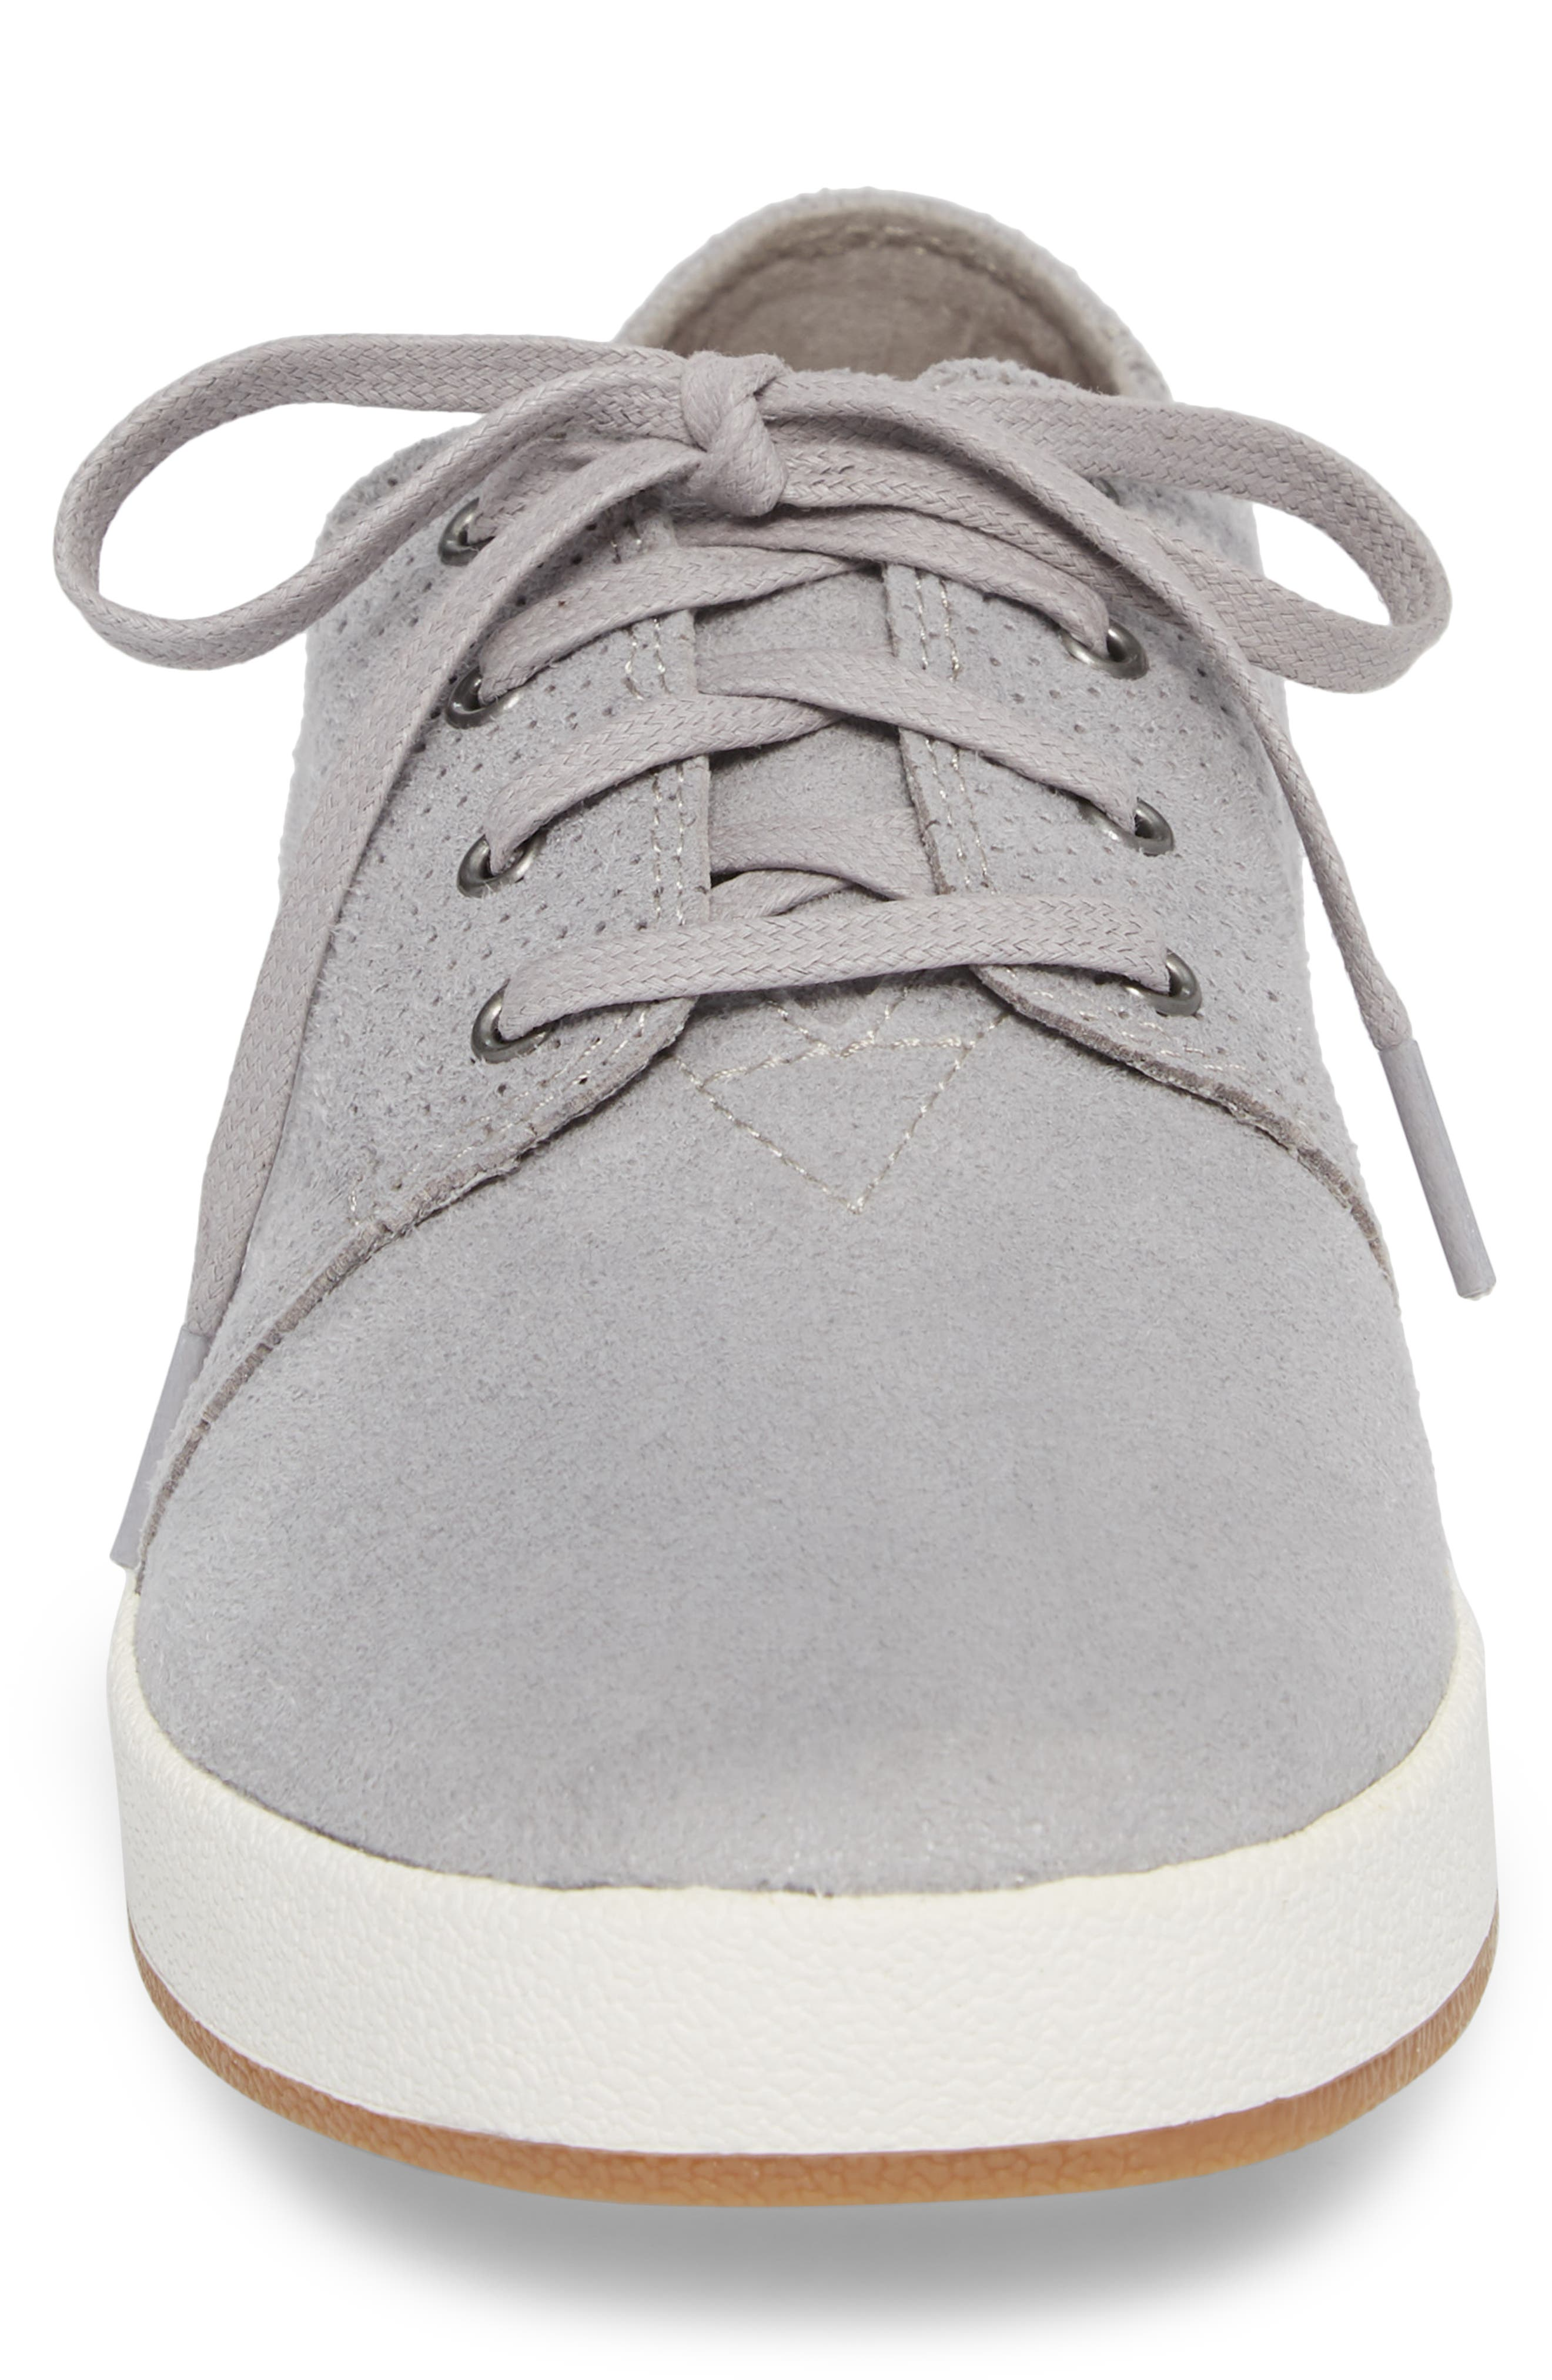 Payton Perforated Sneaker,                             Alternate thumbnail 4, color,                             DRIZZLE GREY PERFORATED